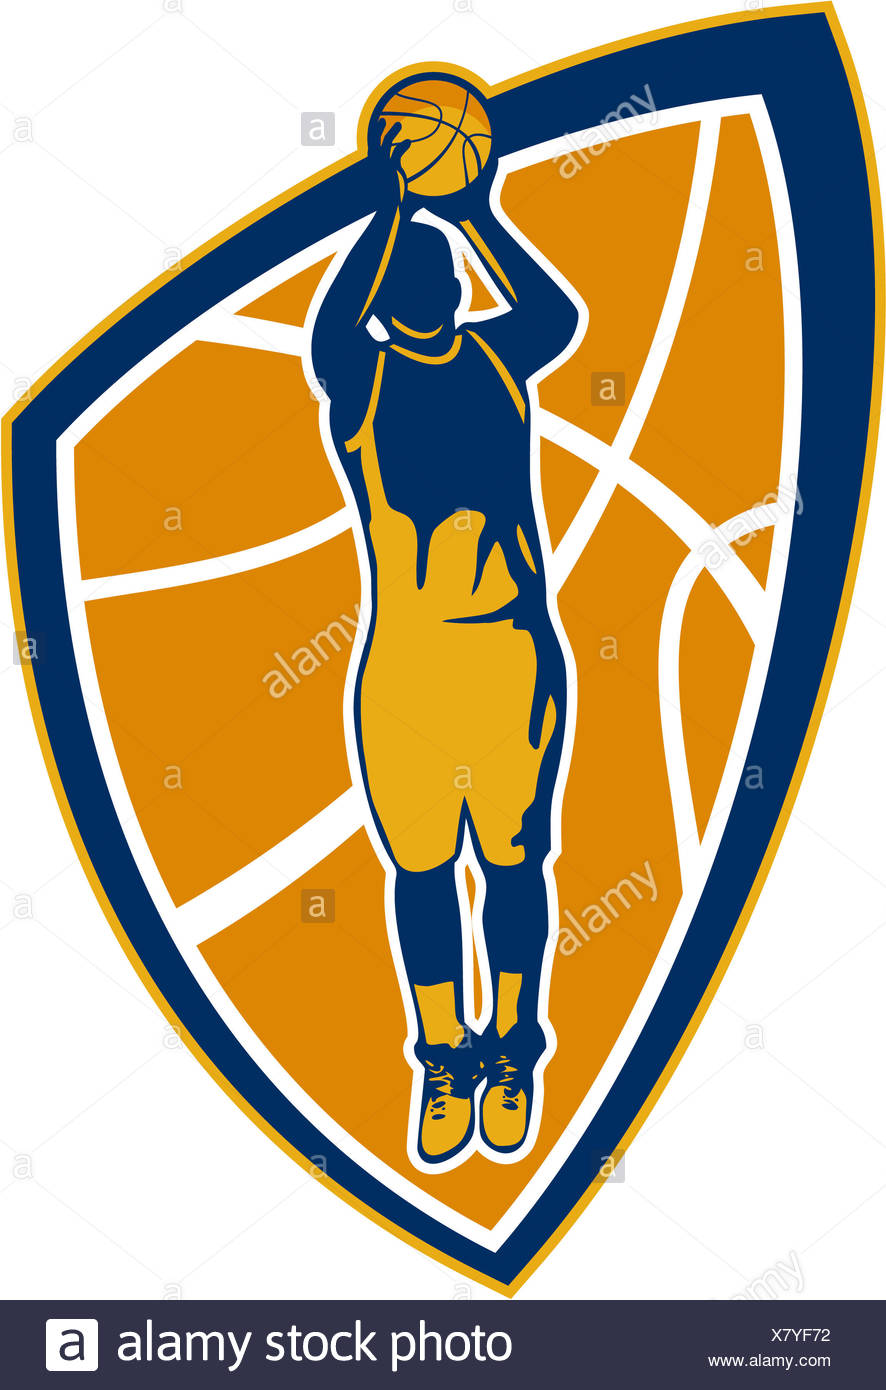 Illustration of a basketball player jump shot jumper shooting jumping set inside shield crest on isolated white background. - Stock Image